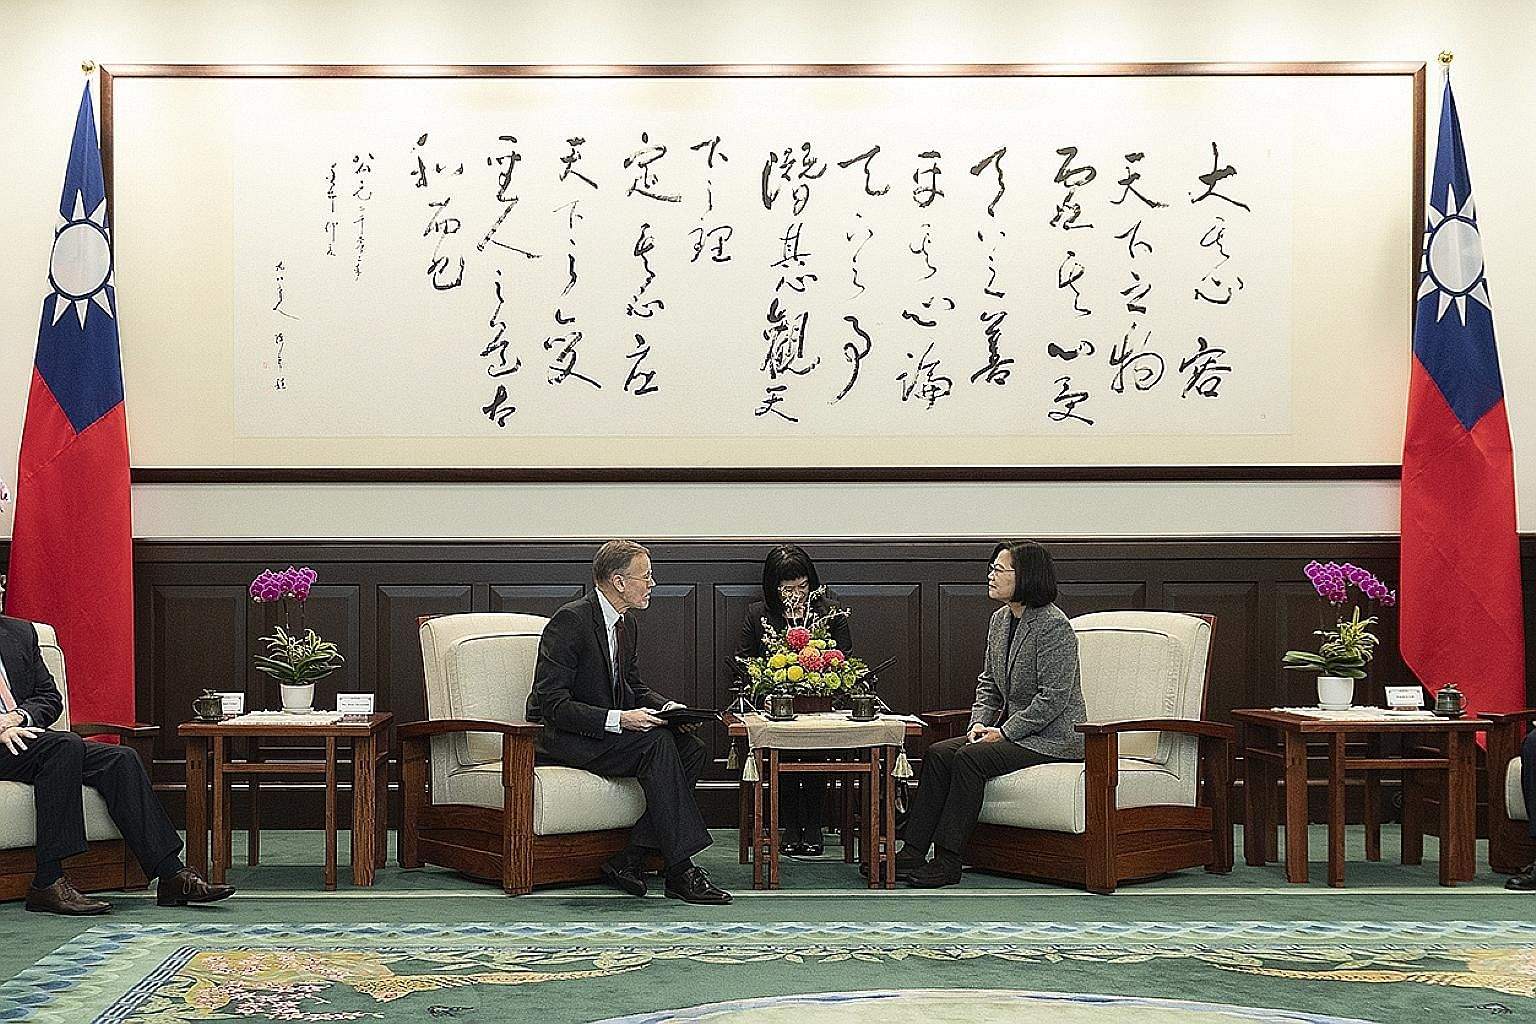 Taiwan President Tsai Ing-wen meeting director of the American Institute in Taiwan William Brent Christensen yesterday, a day after her landslide election victory. While Ms Tsai was widely expected to win, the margin of her victory was fuelled by bot